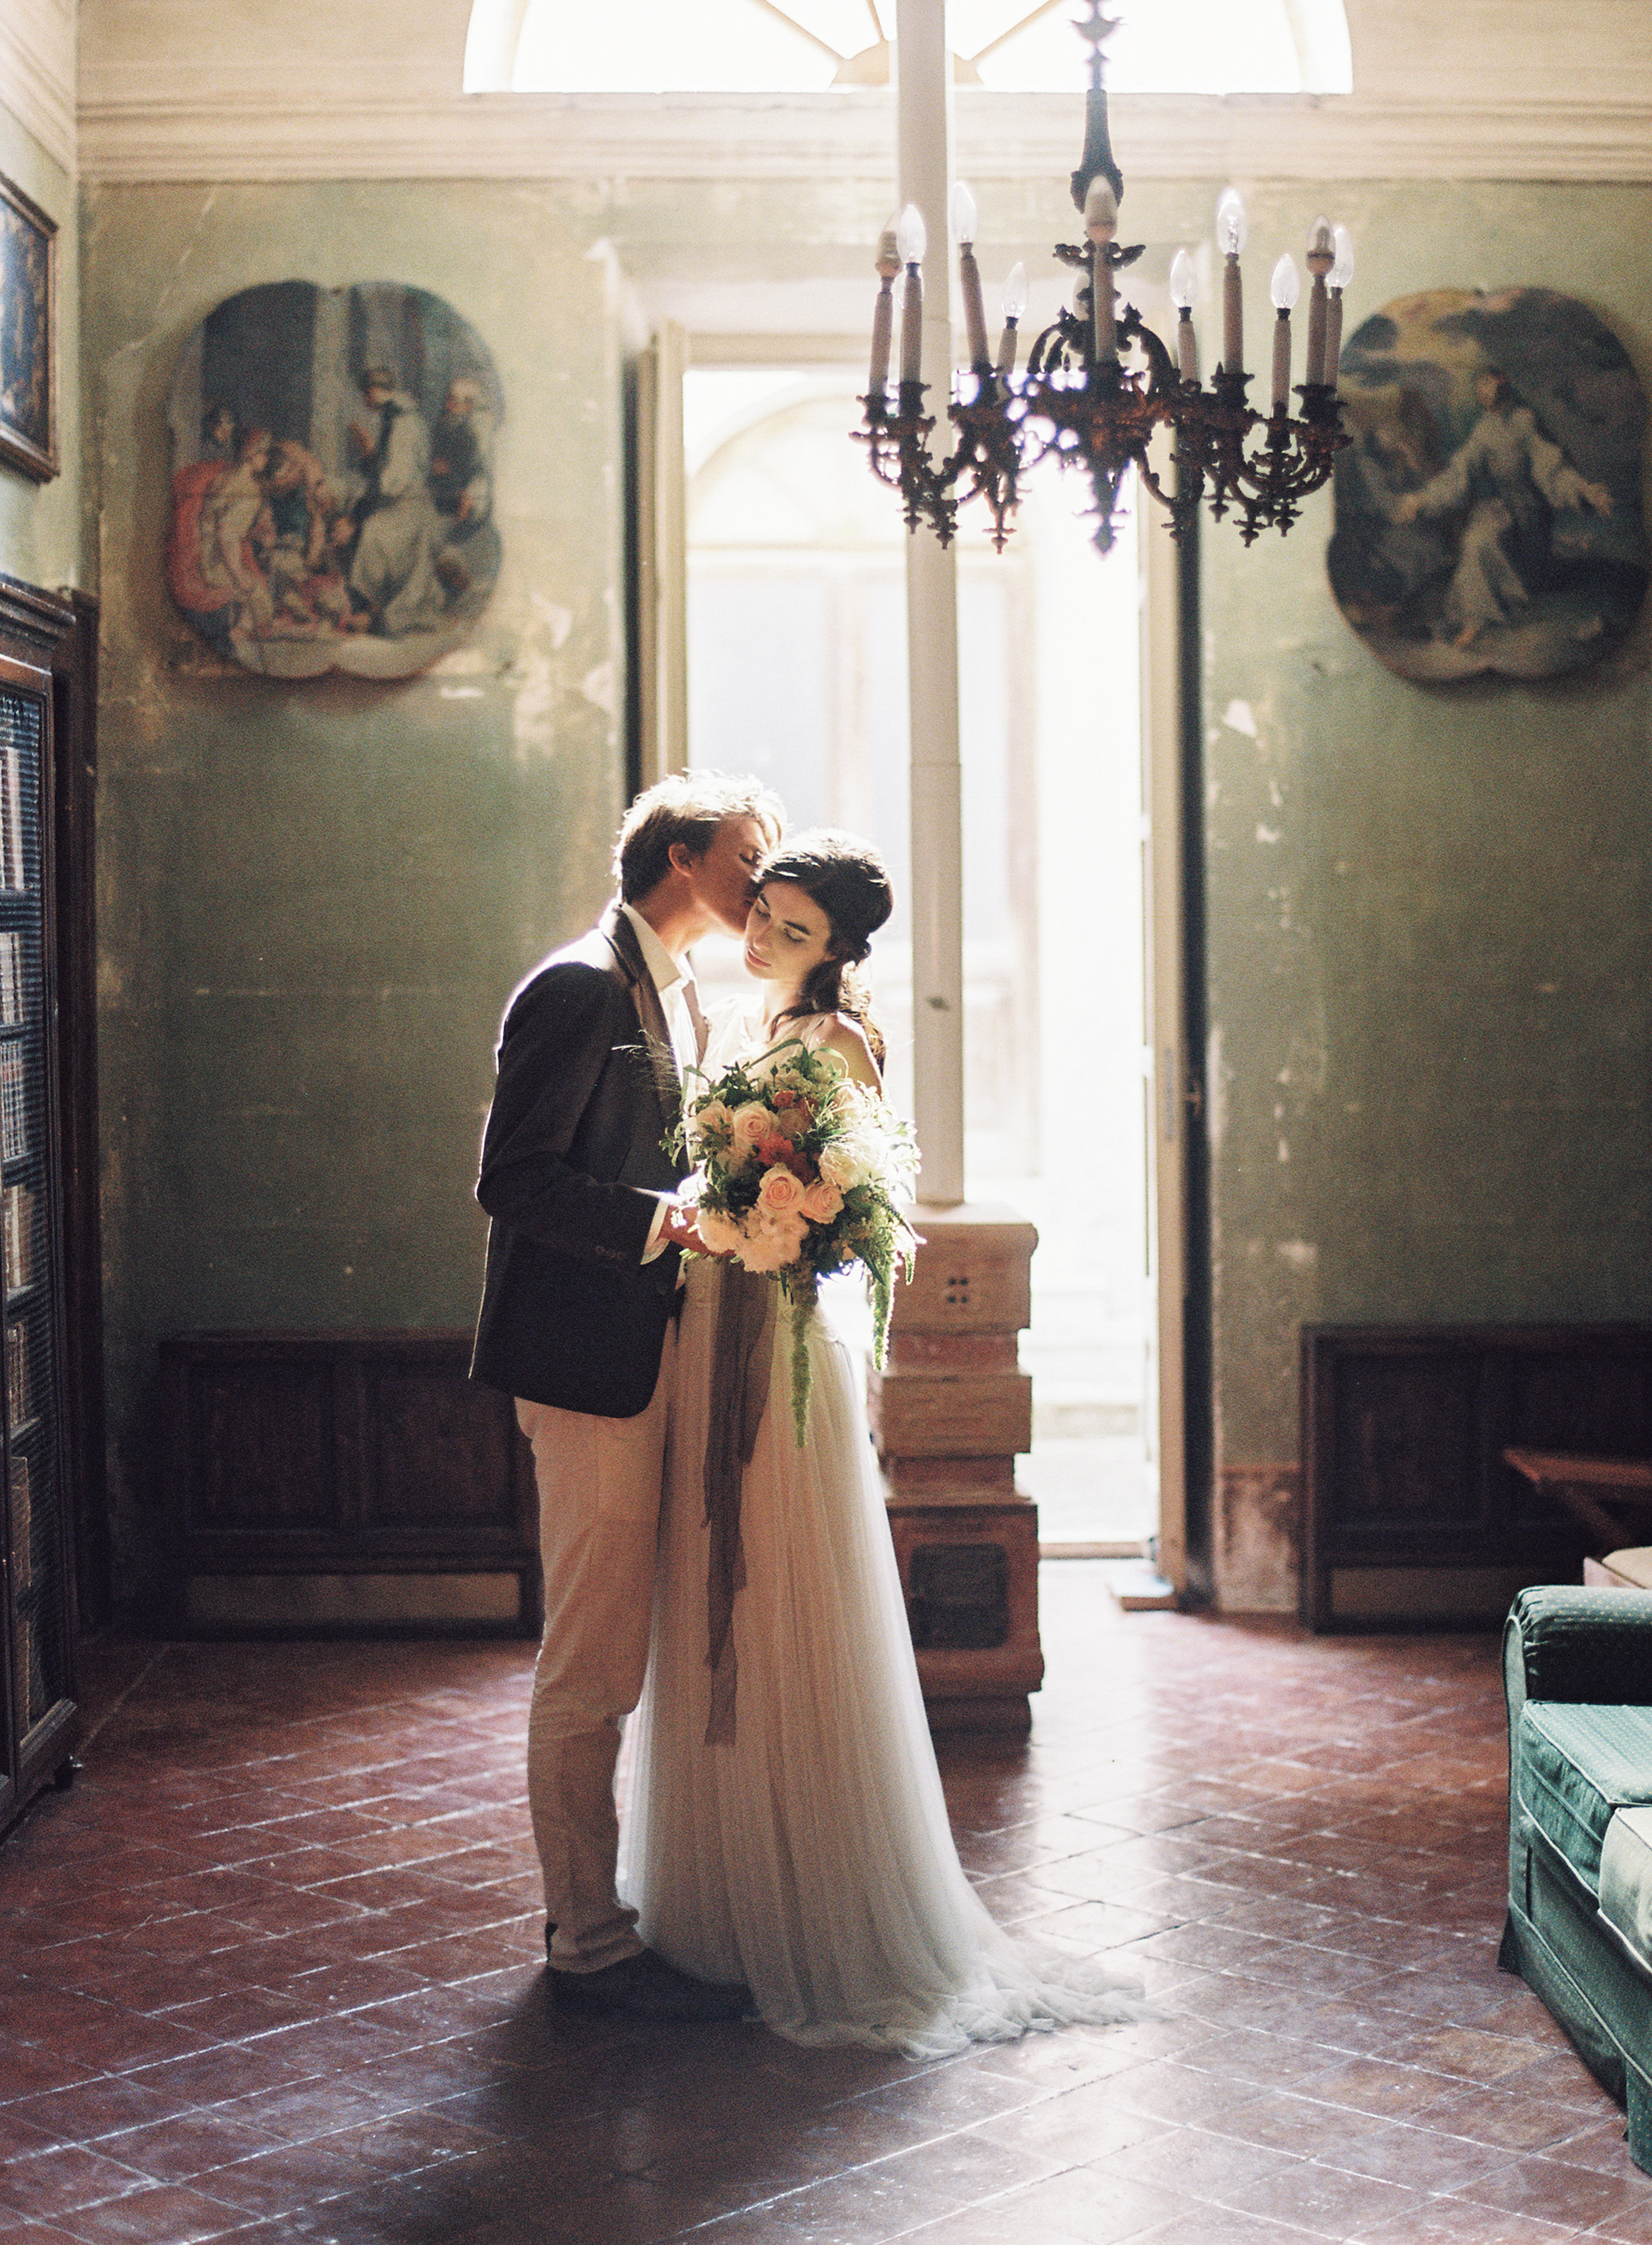 View More: http://michaelandcarinaphotography.pass.us/bridal-inspiration-italy-submission